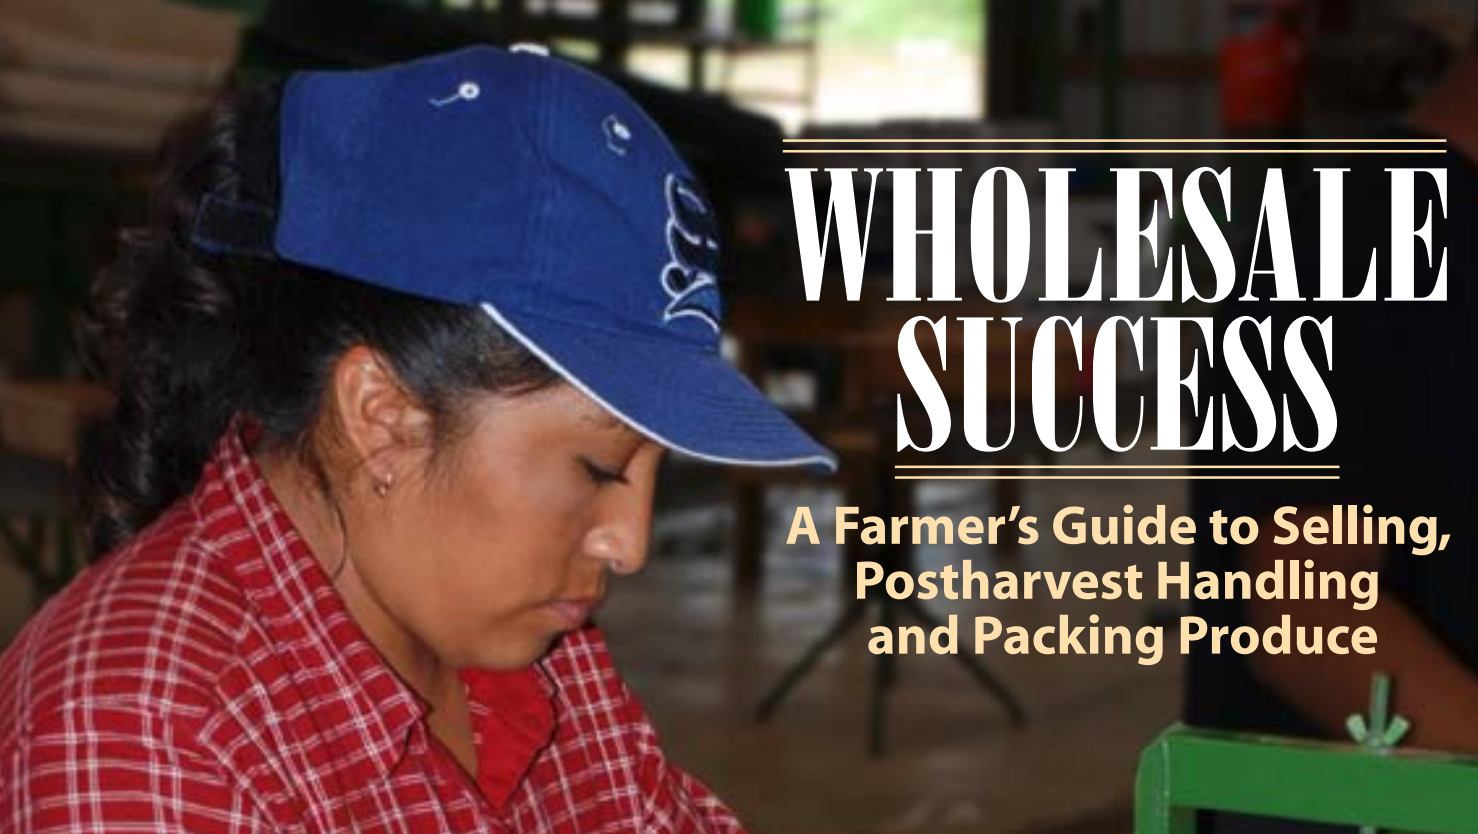 Success Manual] Wholesale Success: A Farmer's Guide to Selling, Postharvest Handling and Packing Produce from  FamilyFarmed.org .  Click to view this PDF.